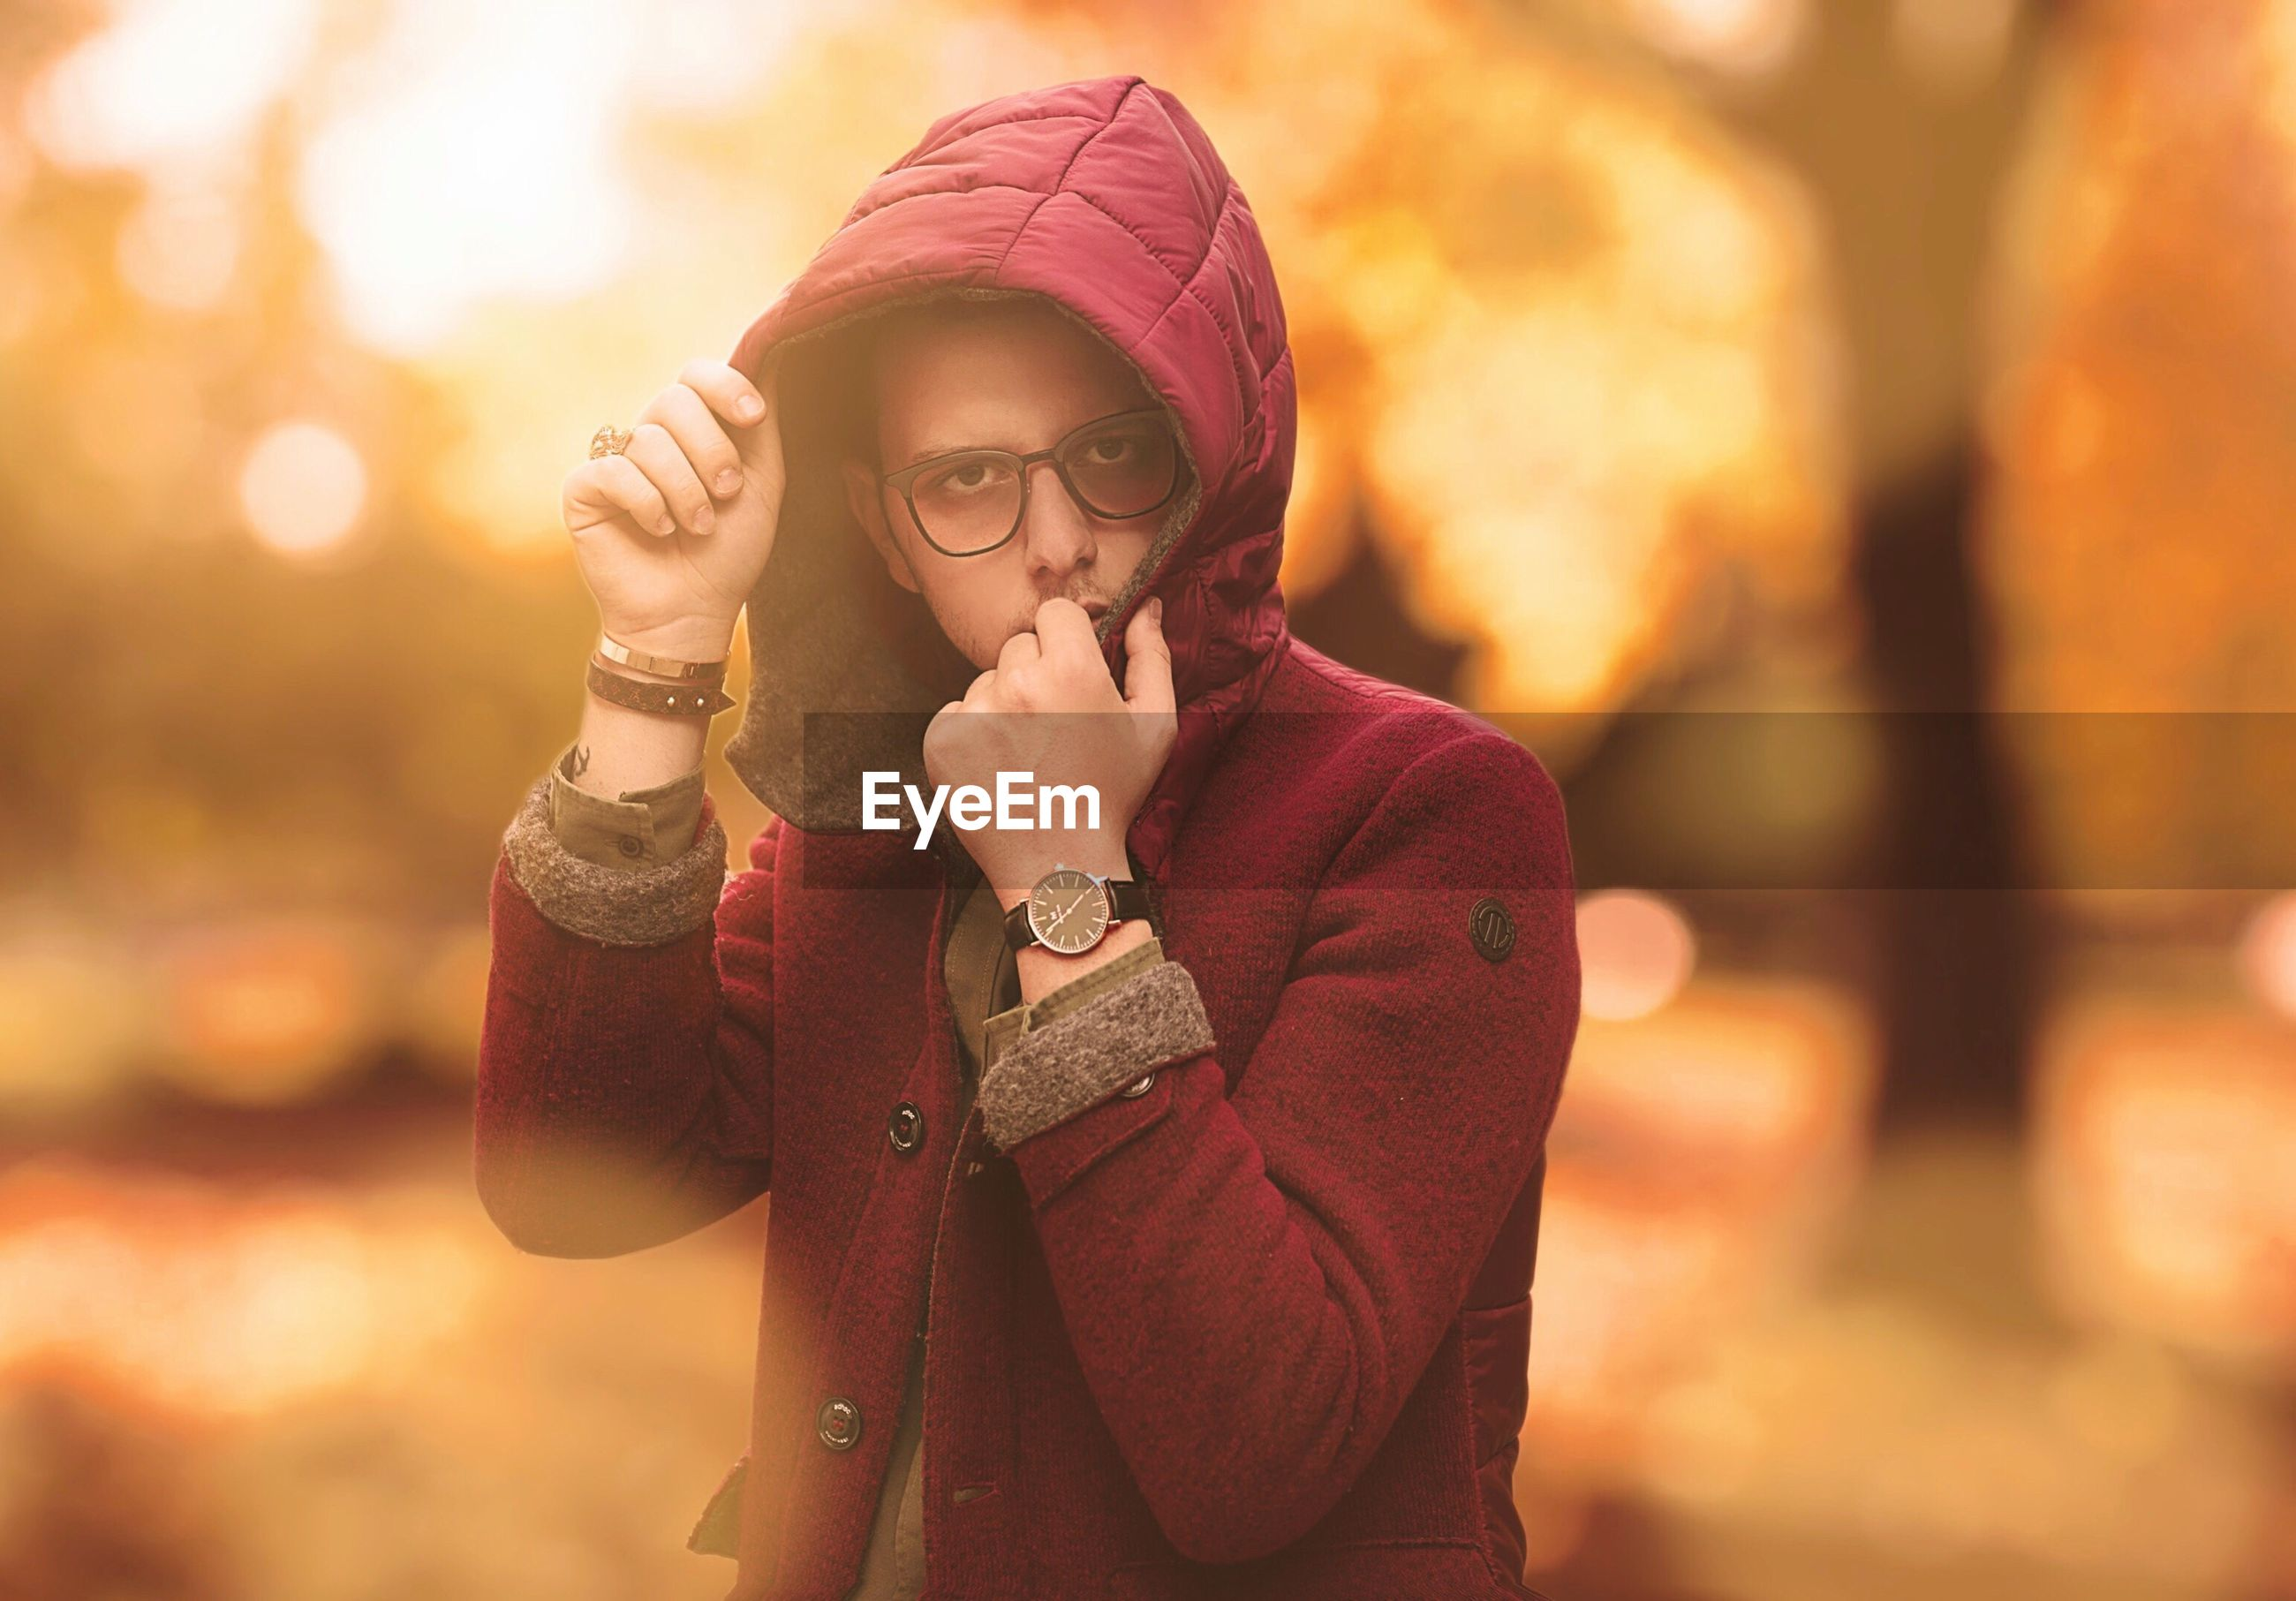 real people, focus on foreground, front view, leisure activity, lifestyles, autumn, young women, scarf, one person, young adult, outdoors, fashion, night, standing, beautiful woman, warm clothing, nature, close-up, people